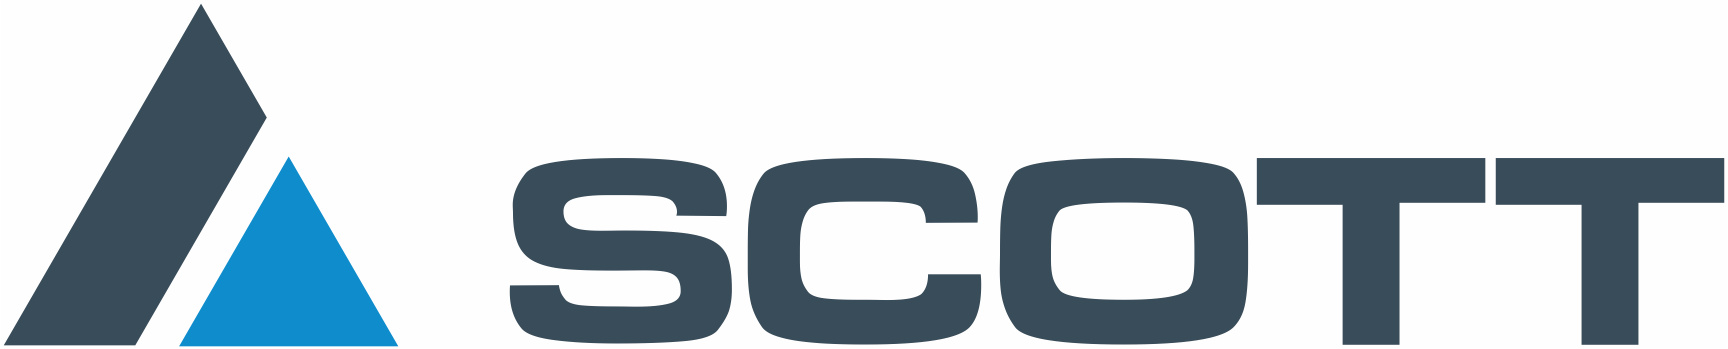 Scott-logo-HQ